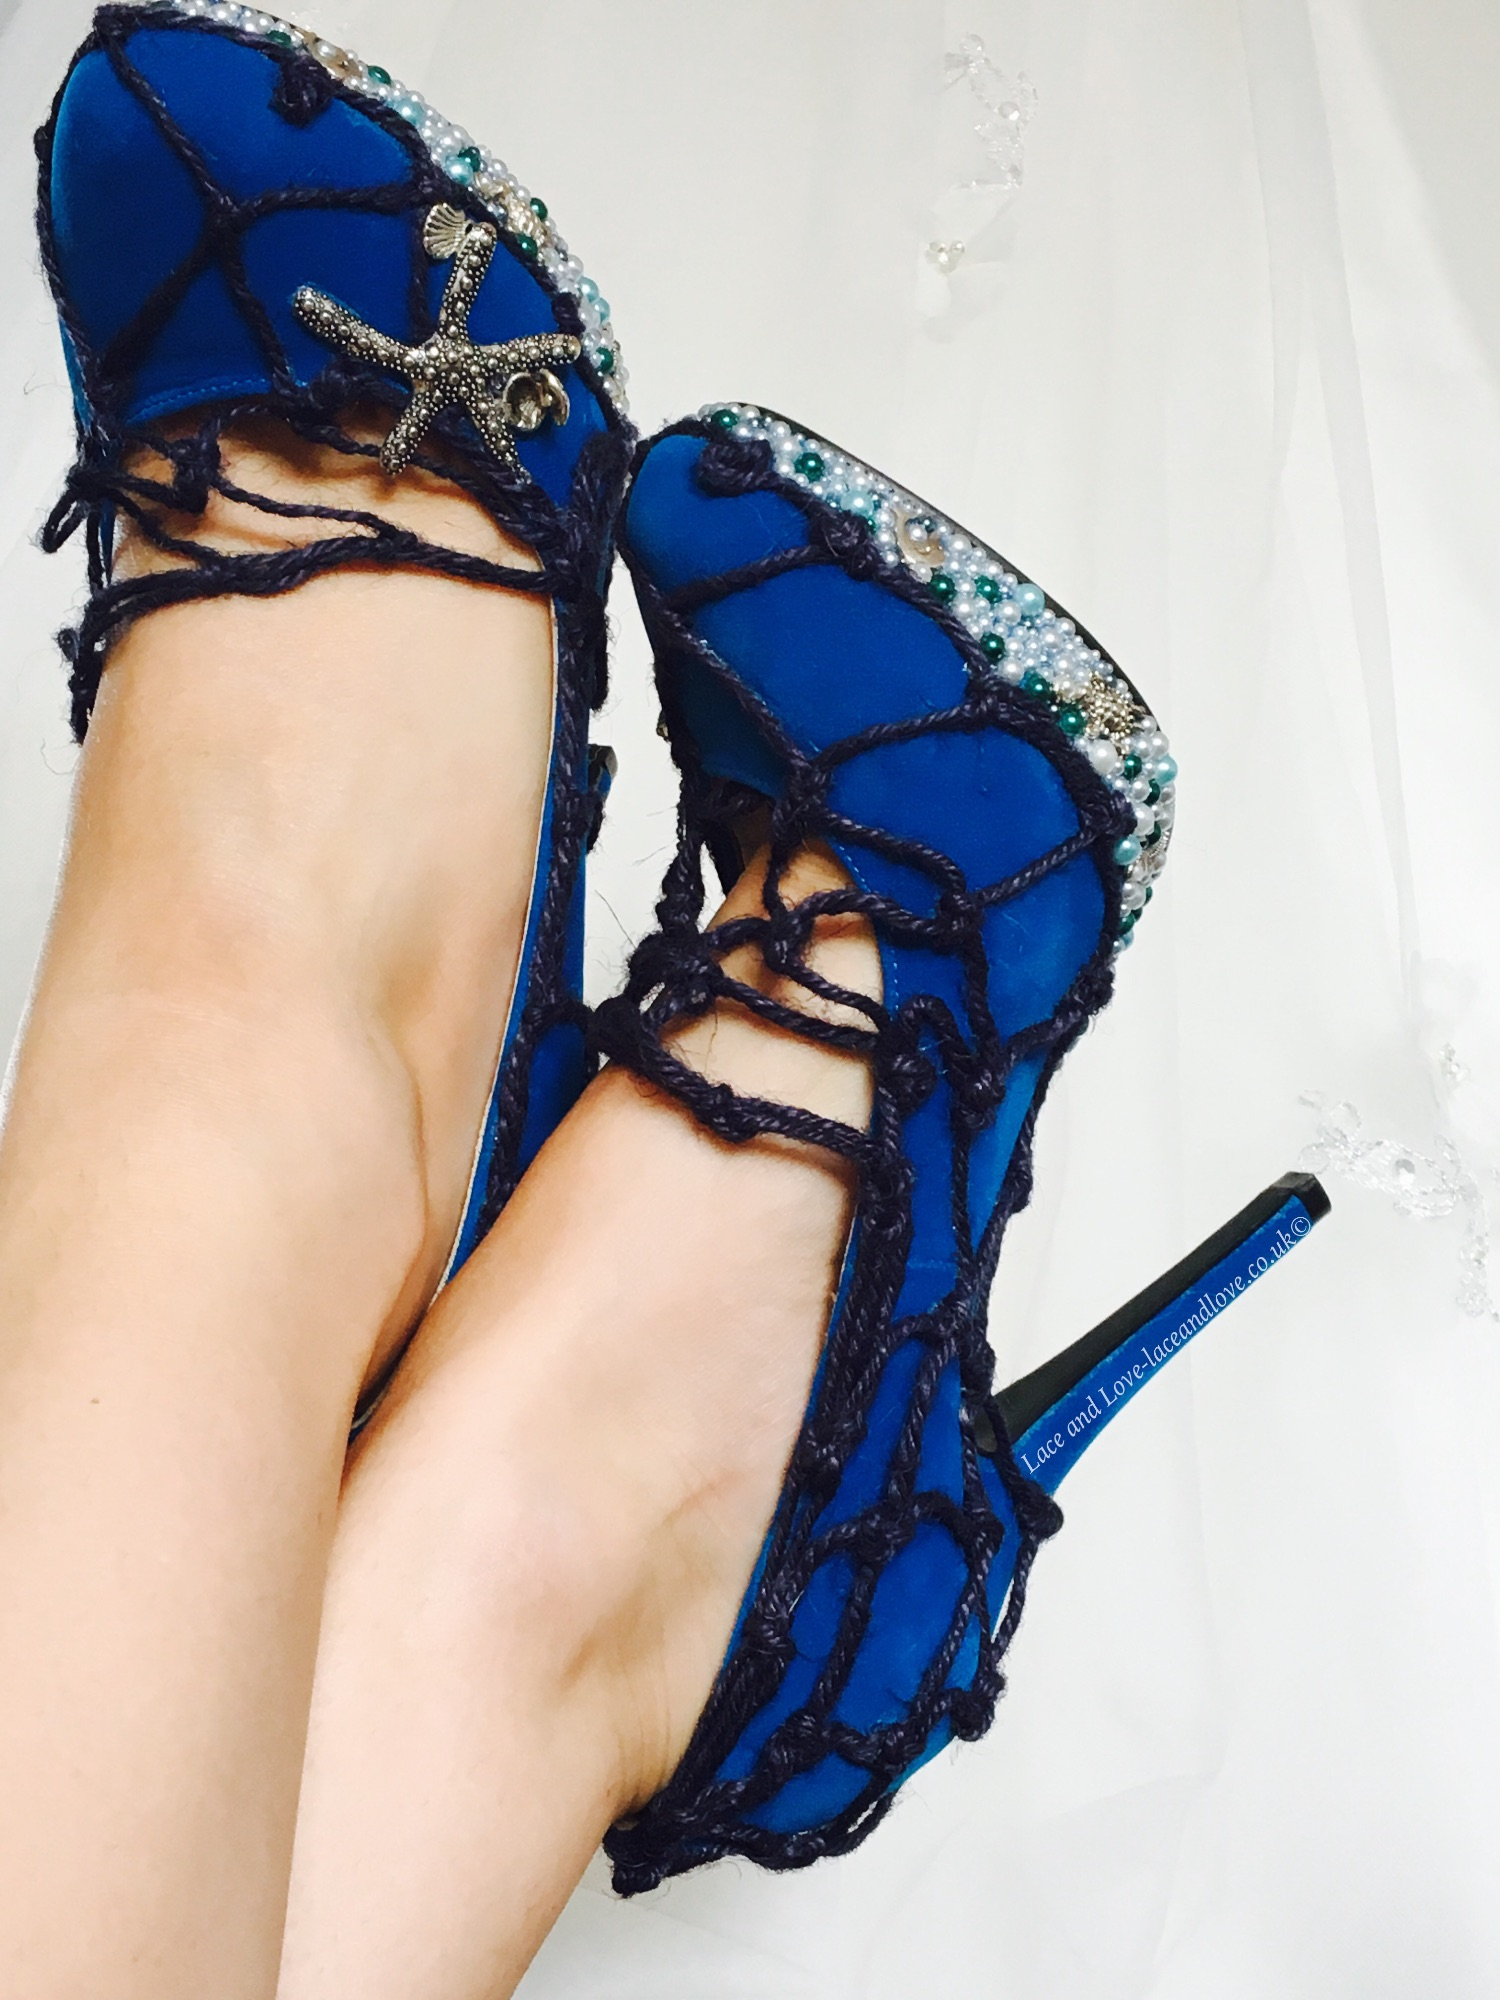 Unique shoes. Blue shoes with pearl detail from Lace and Love